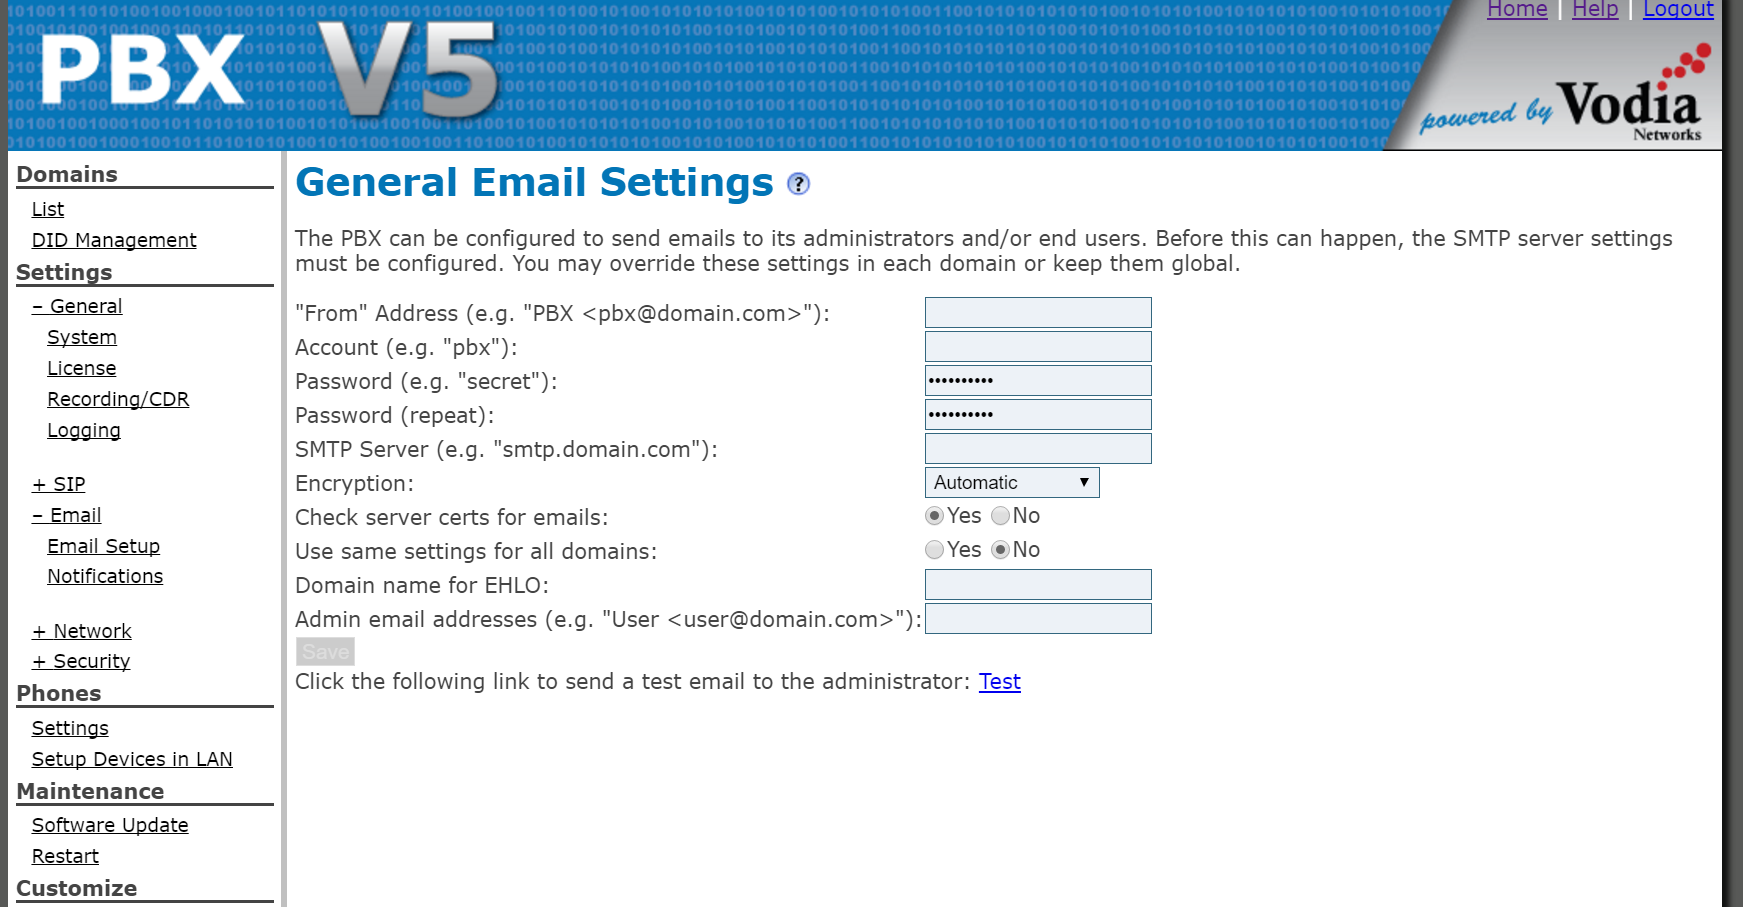 Vodia PBX Software - Email settings